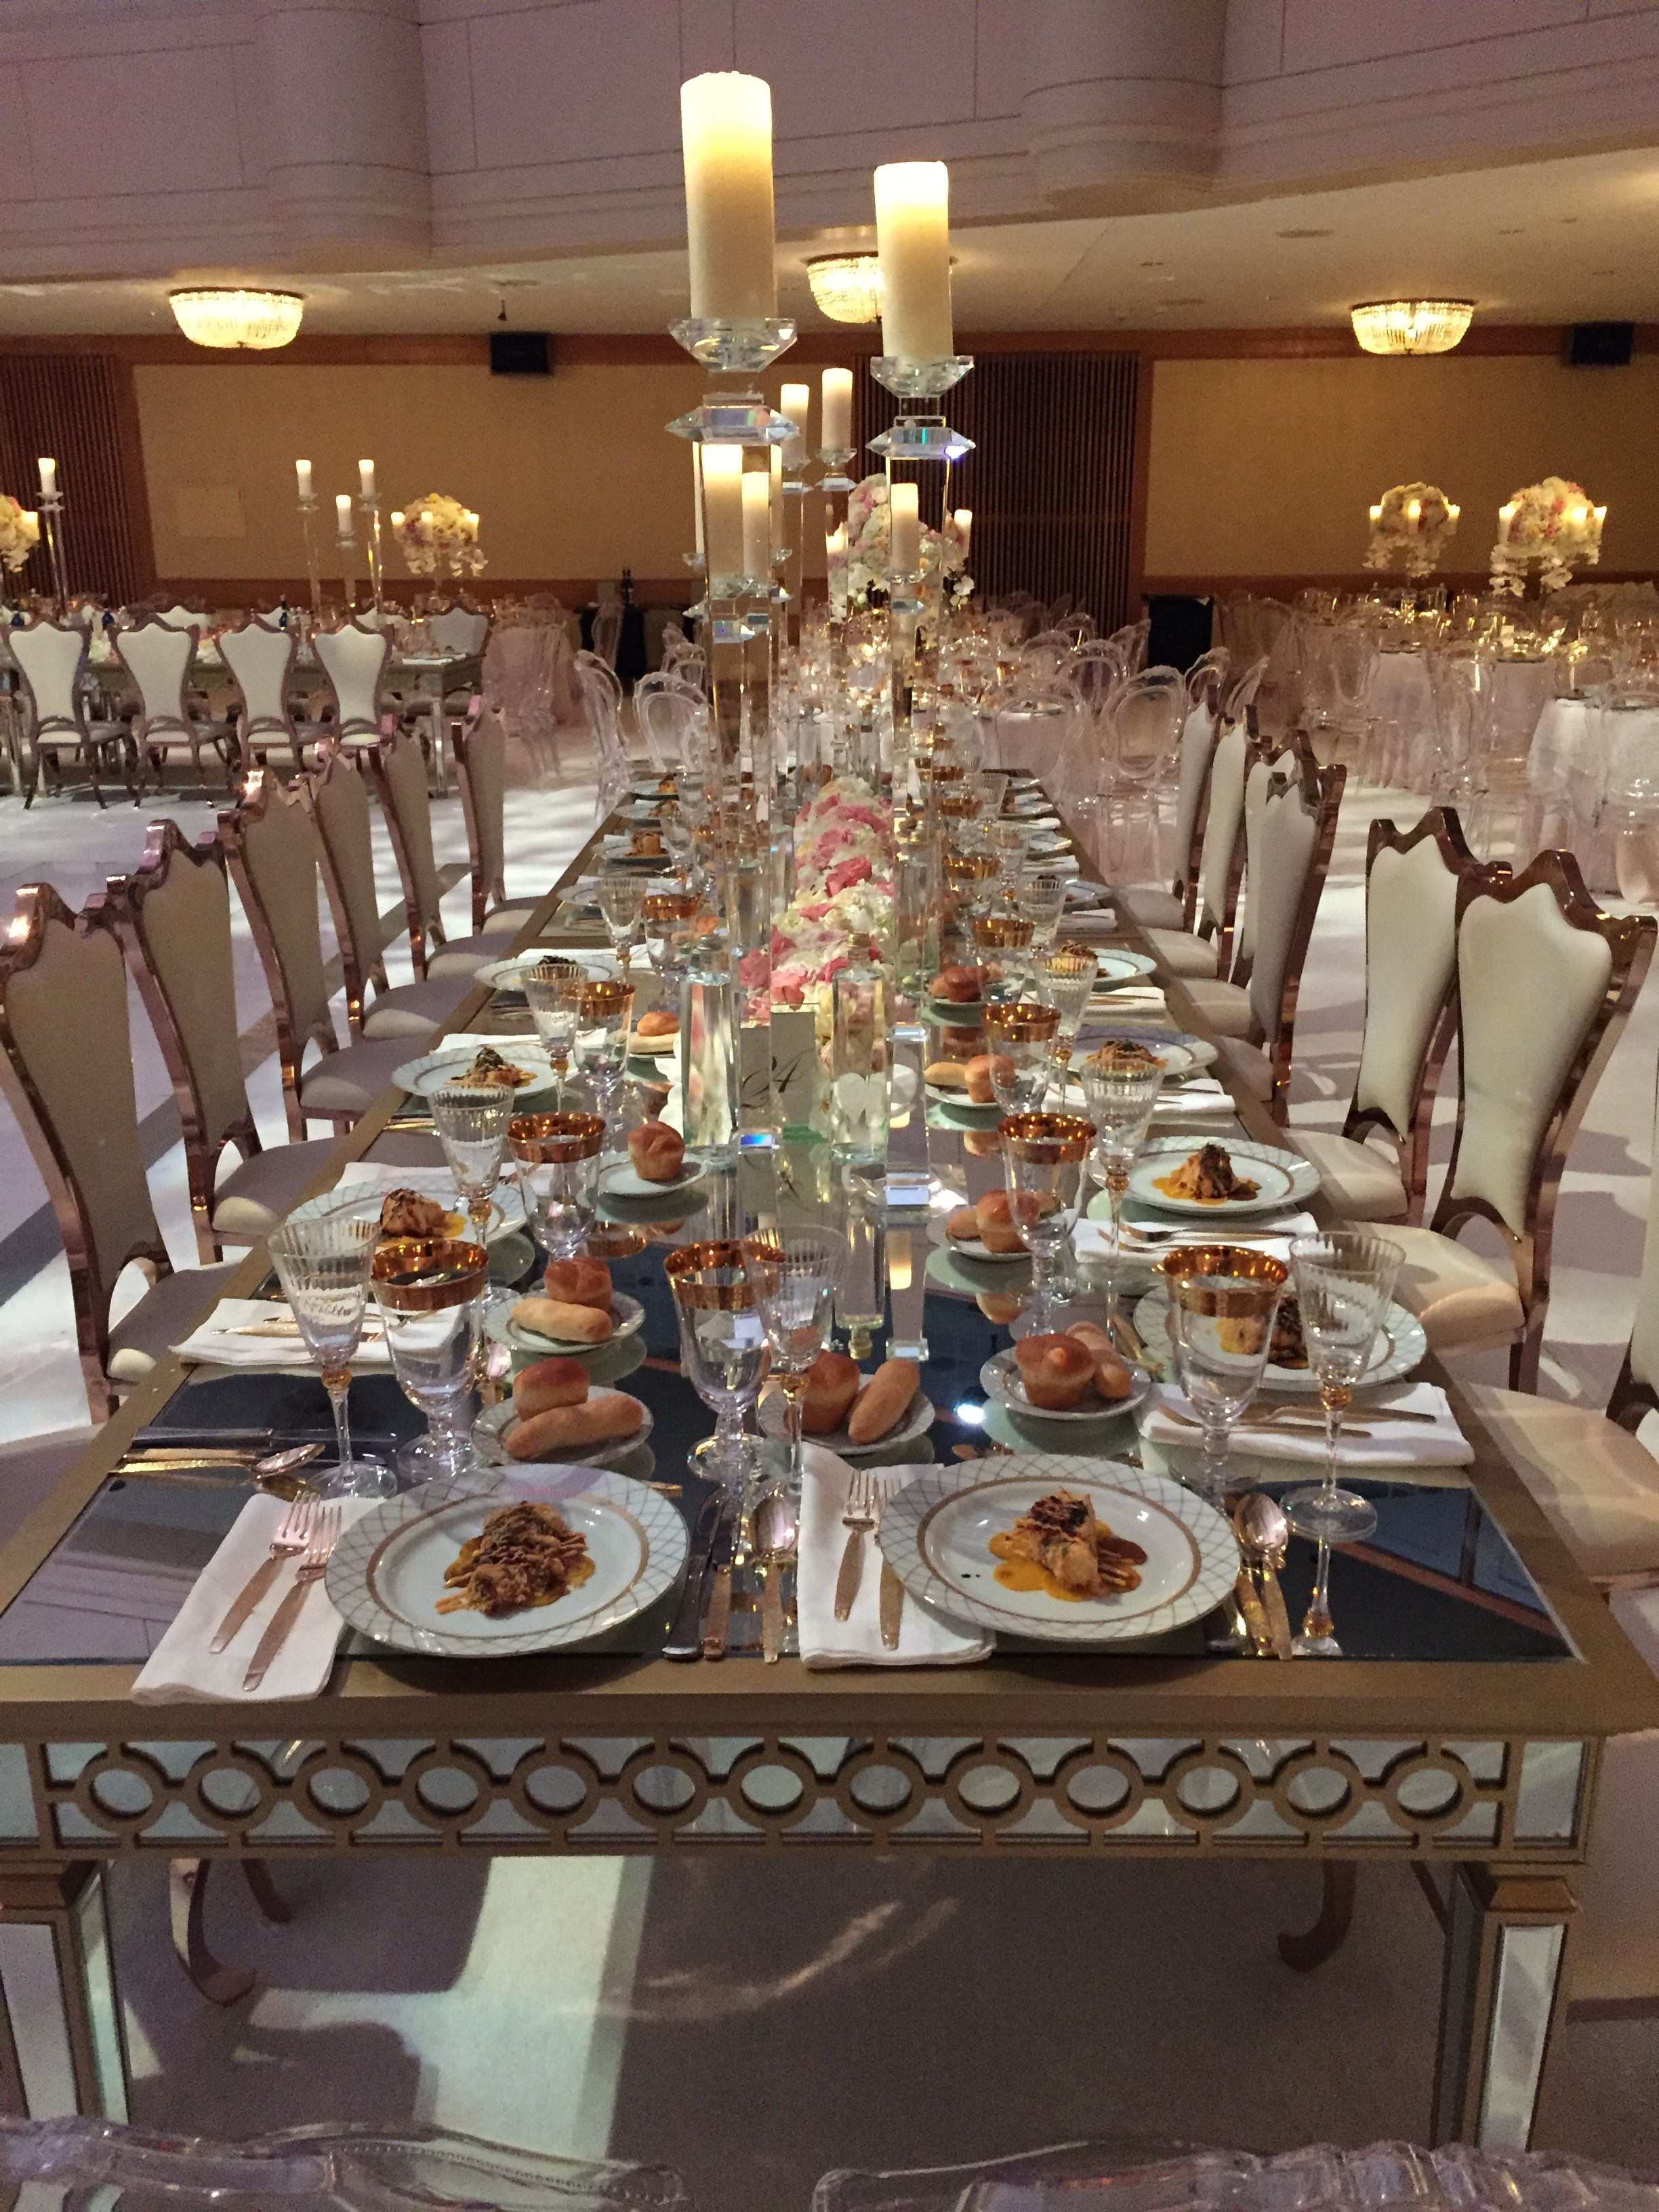 mirrored banquet table with floral garland and crystal candlesticks